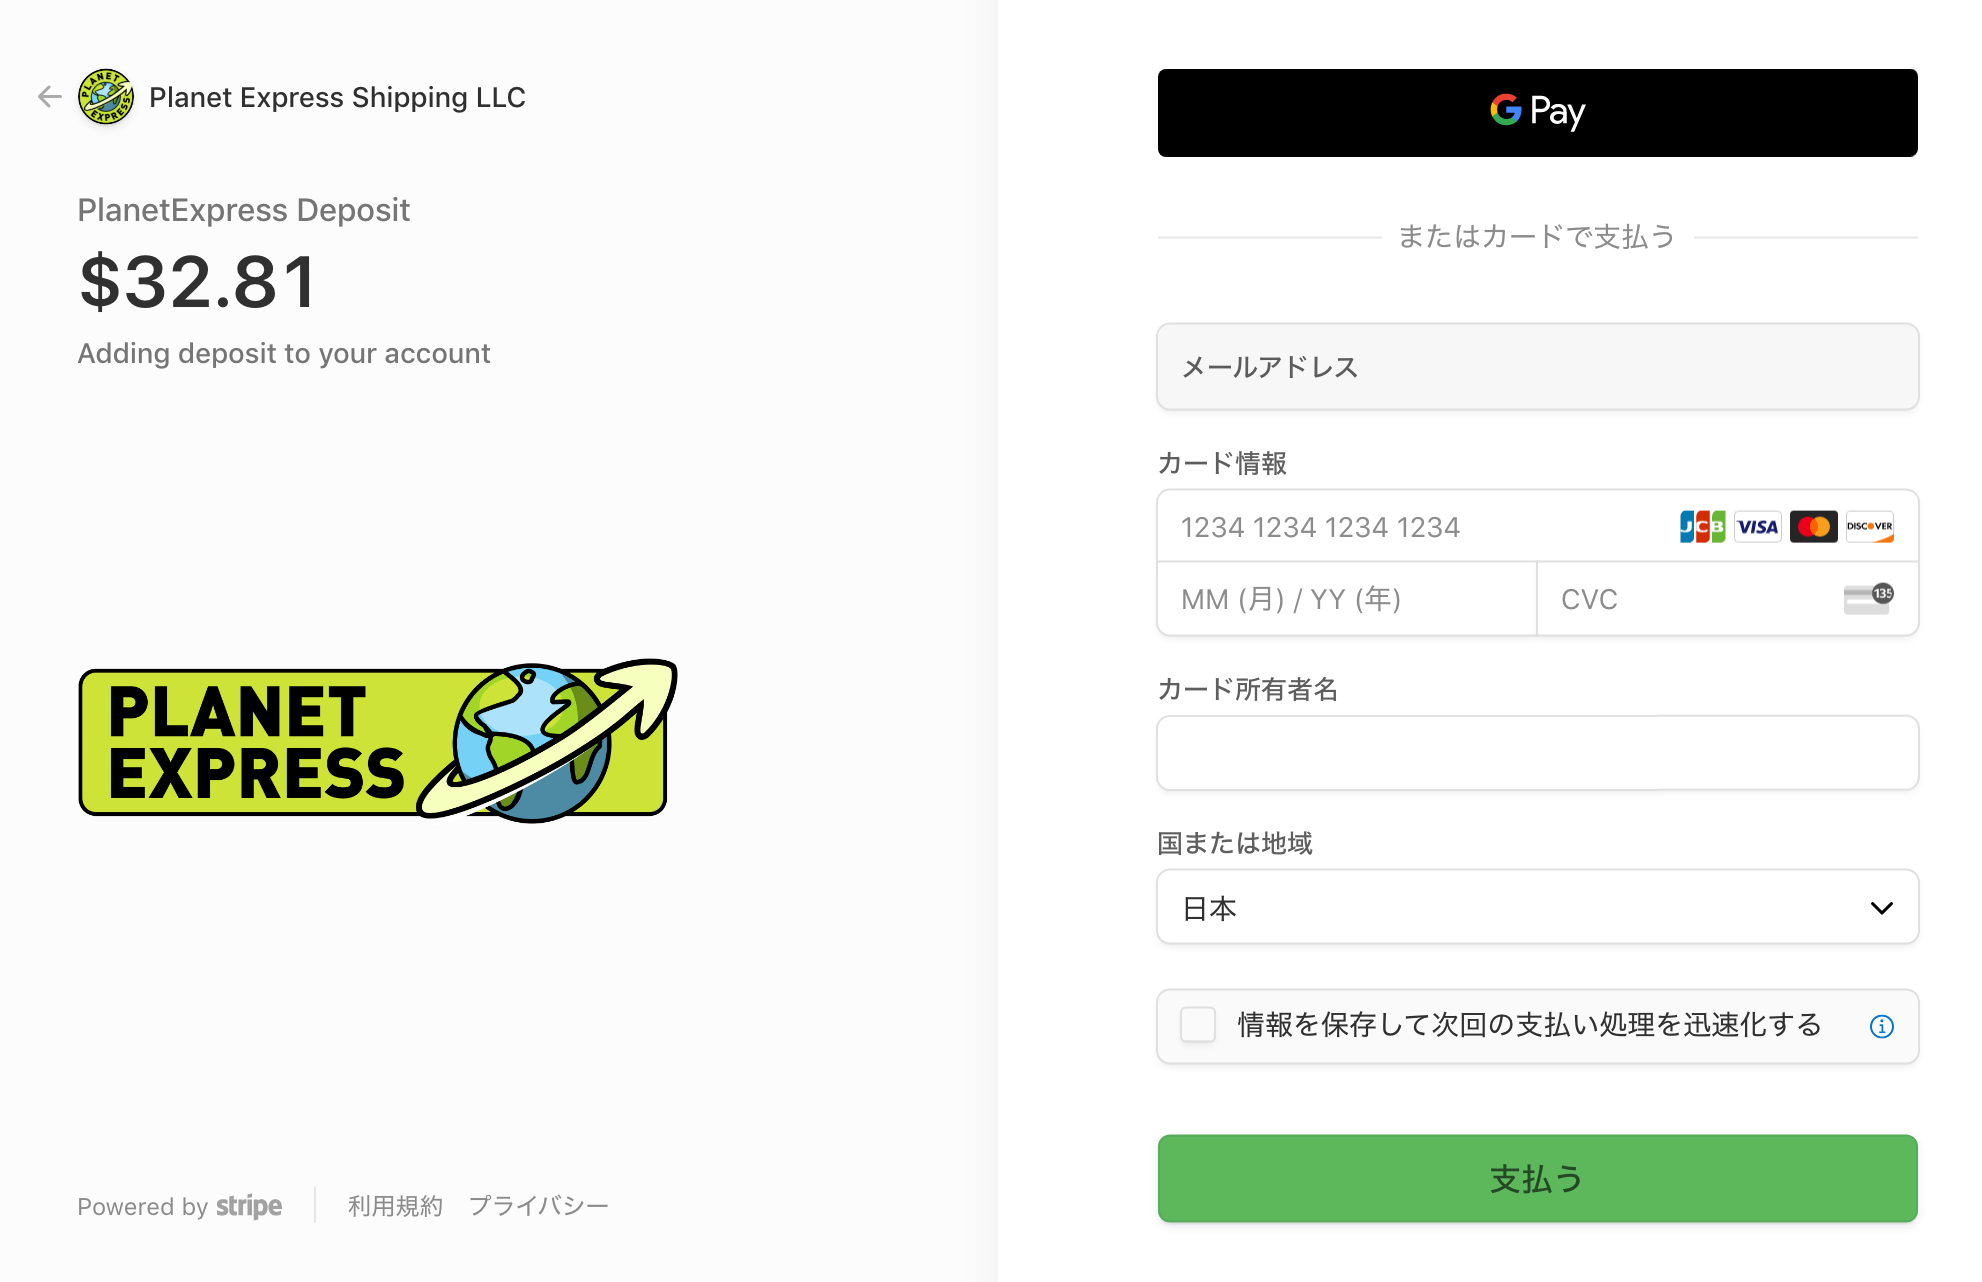 PLANET EXPRESS 送料の支払い